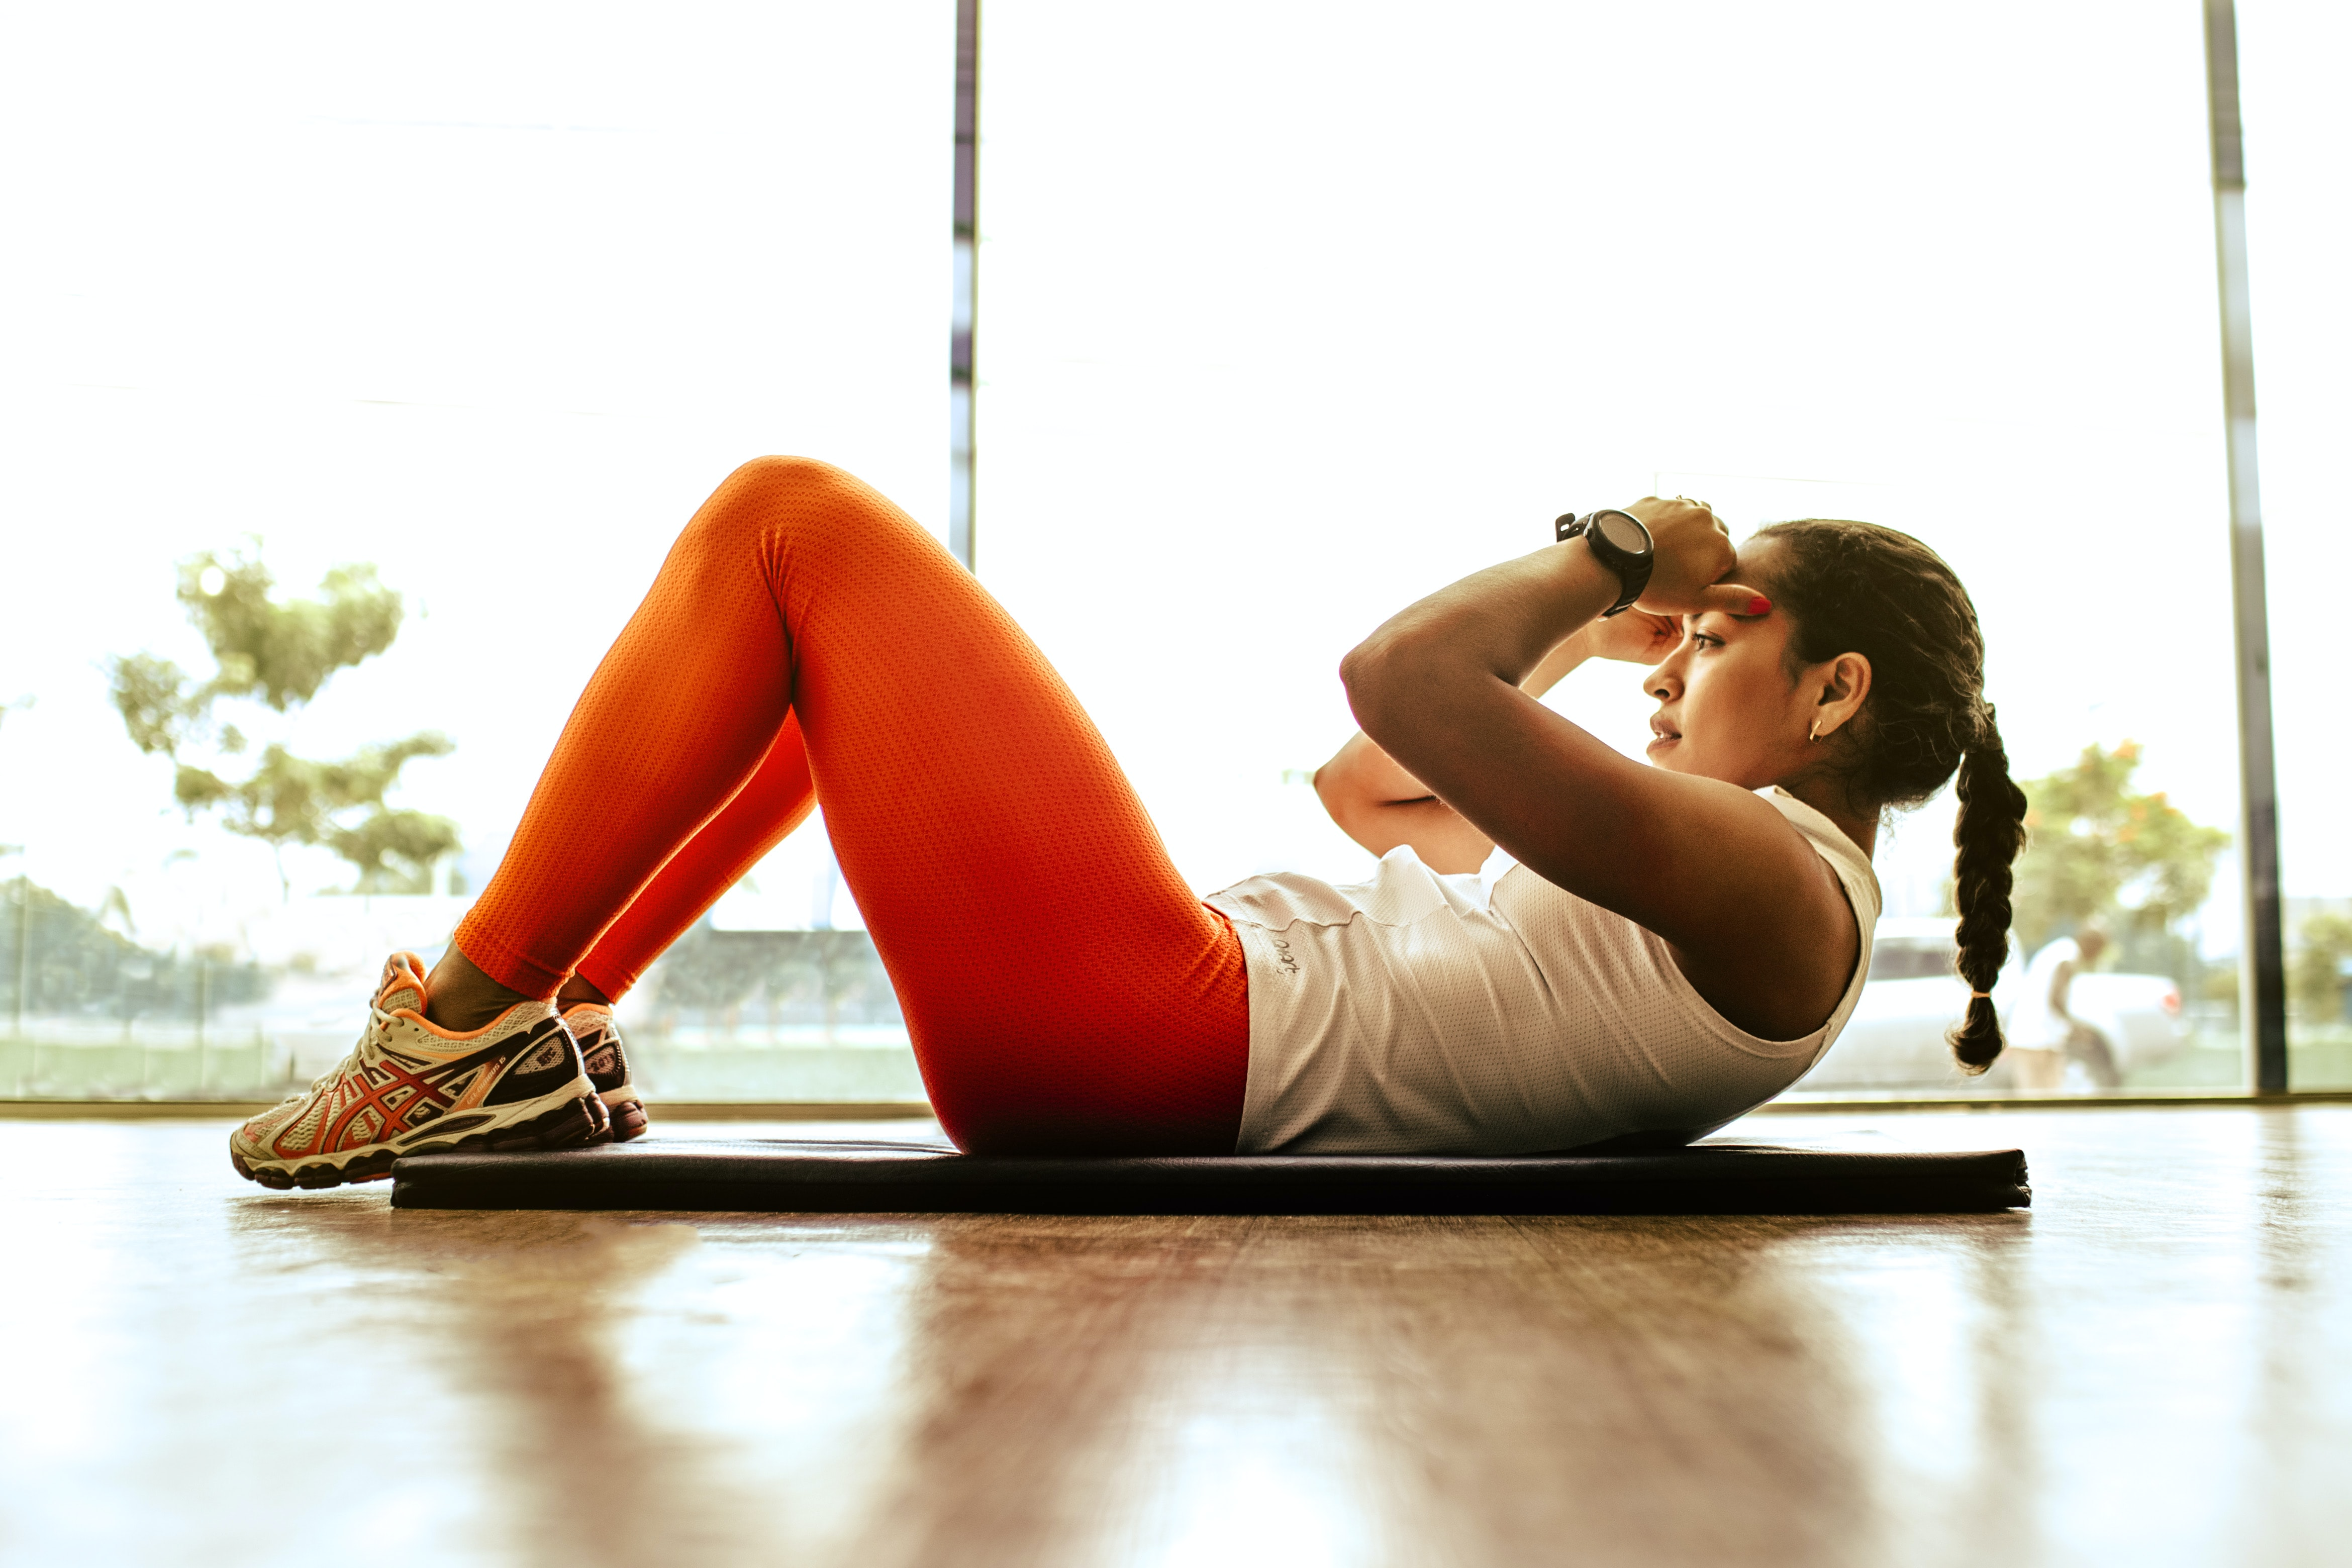 Woman does crunches on her yoga mat as a part of your online fitness class.